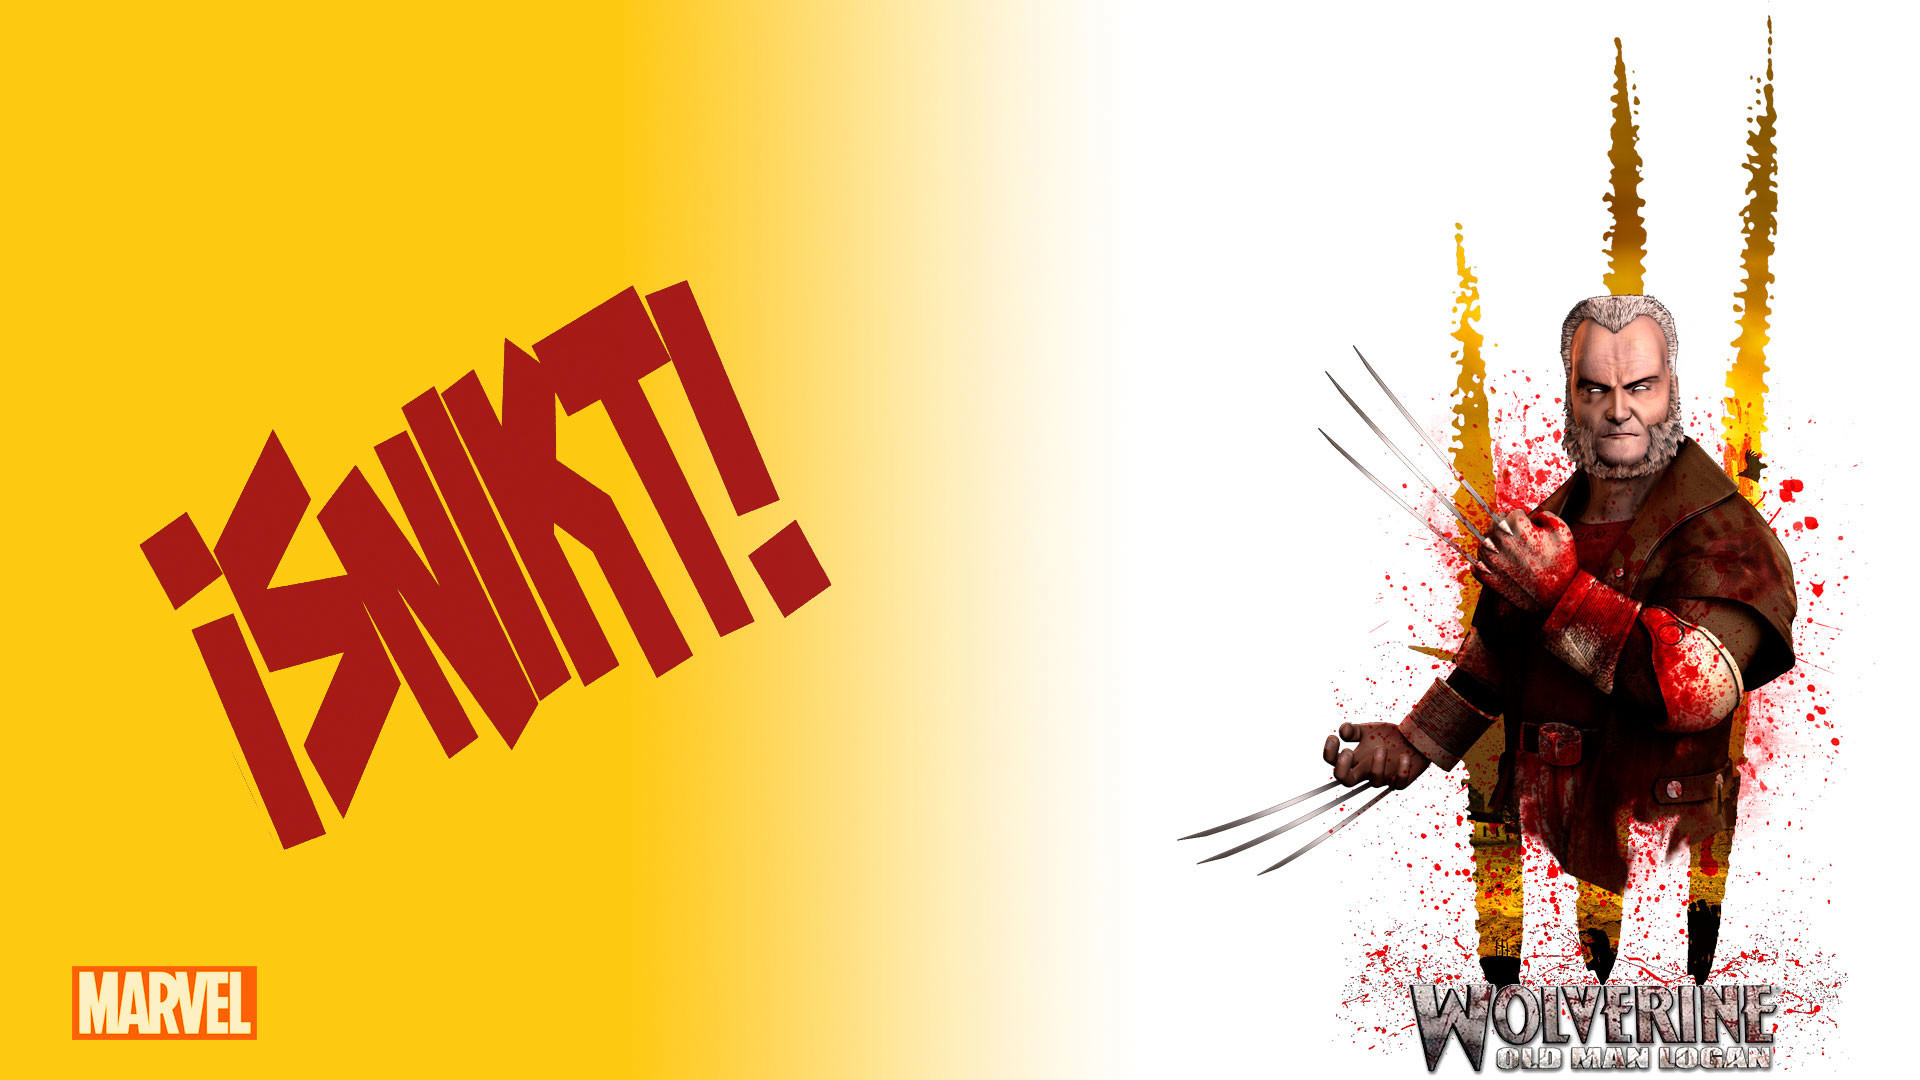 1920x1080 Comics - Wolverine Ultimate Wolverine Wallpaper